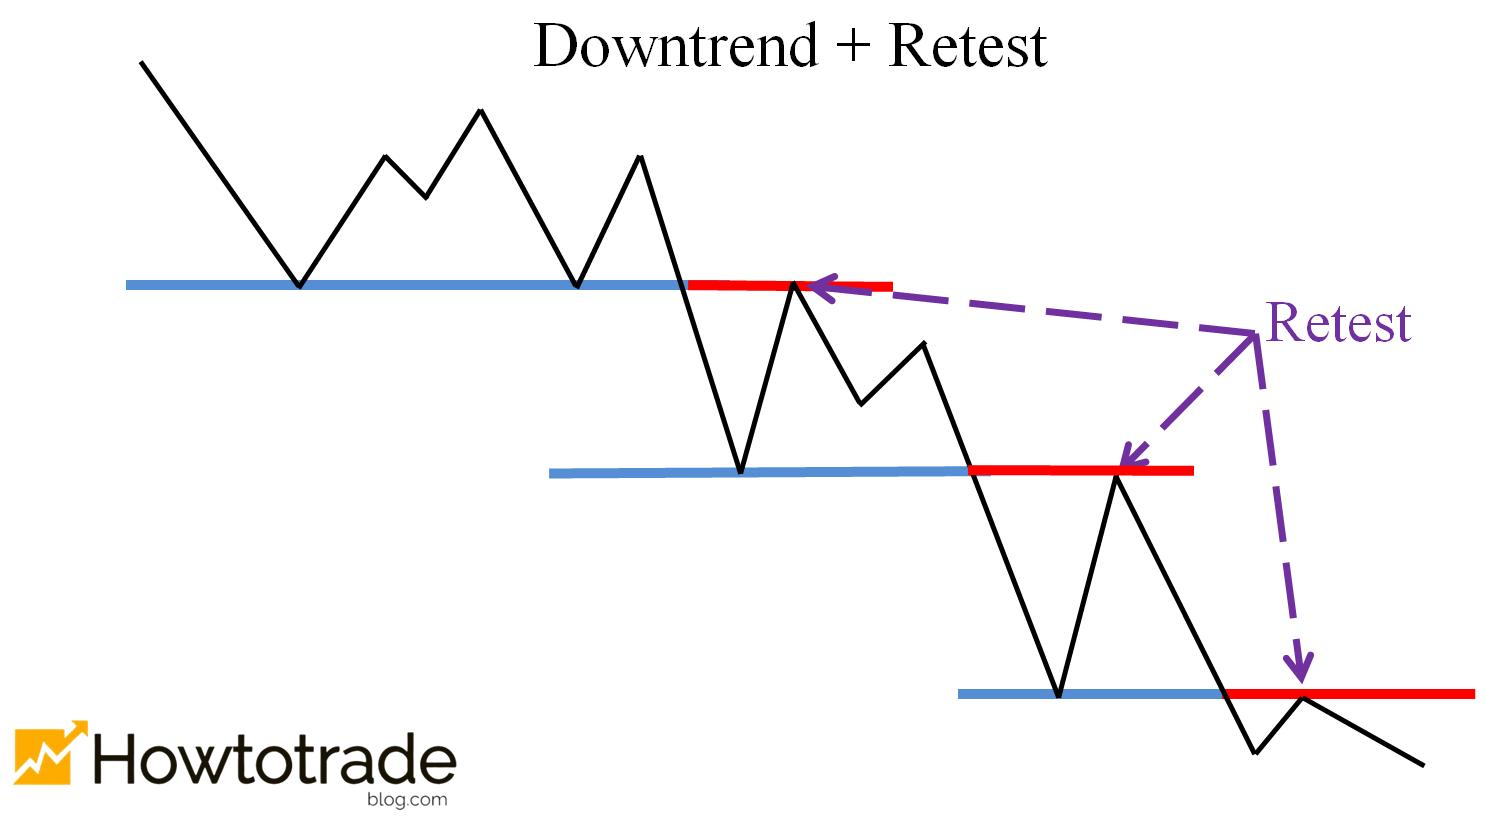 The price retests the levels in a downtrend